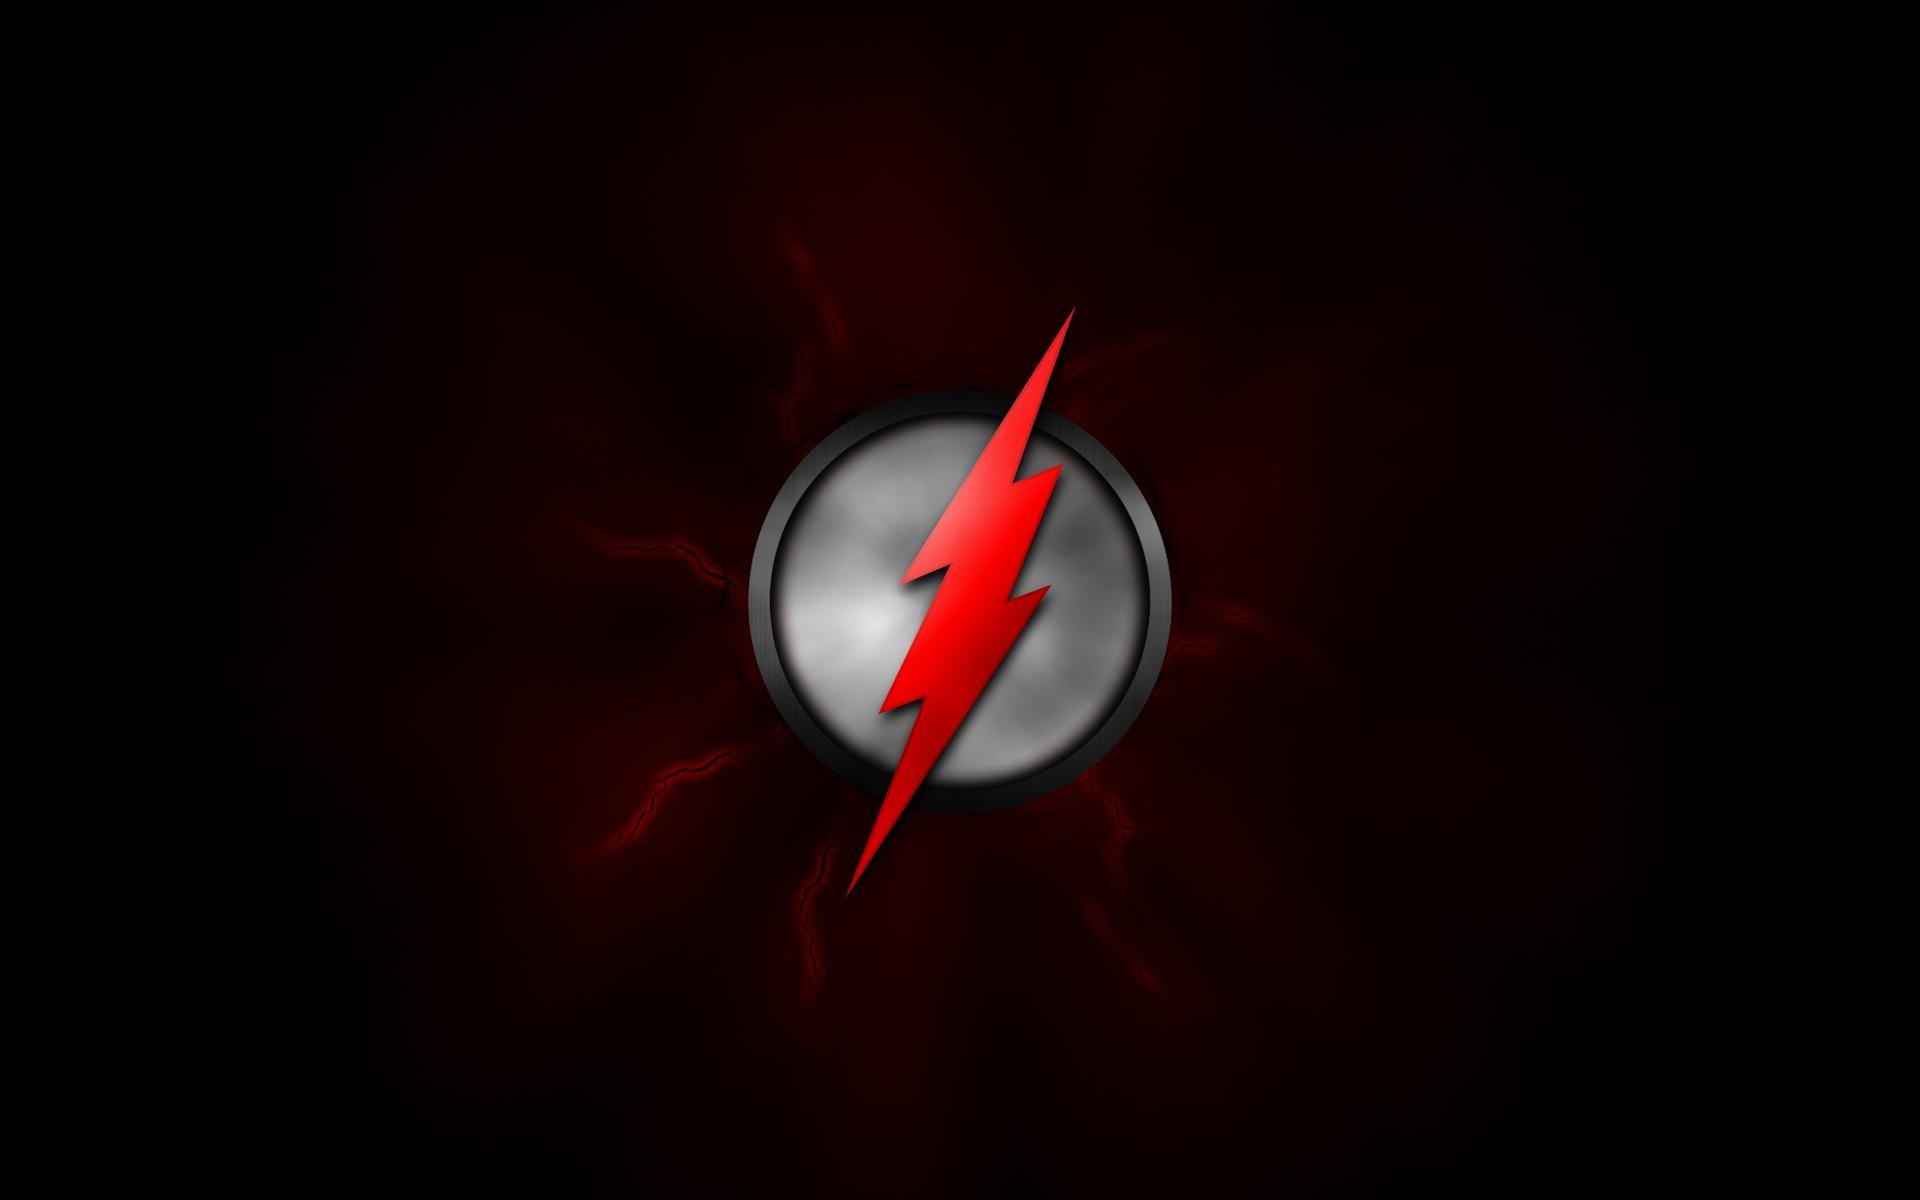 The-Flash-HD-Download-The-Flash-HD-wallpaper-